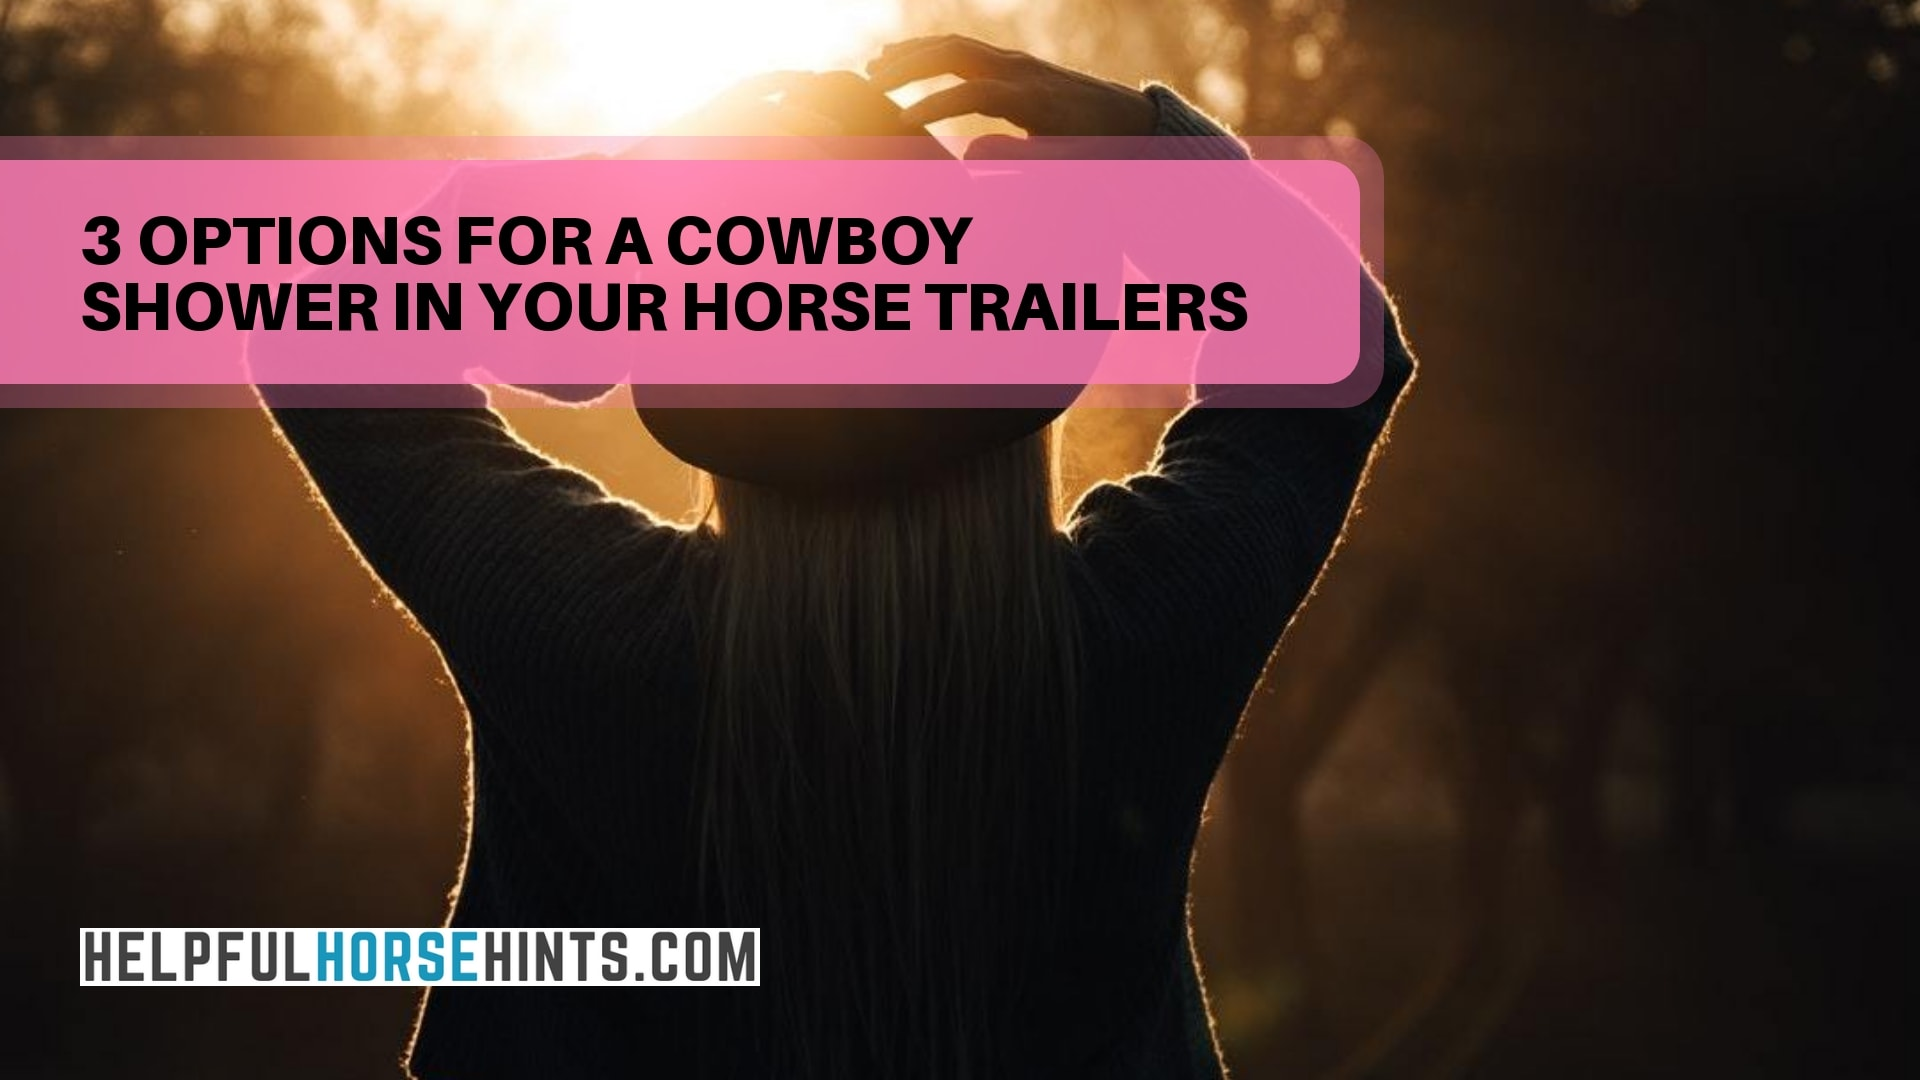 options for a cowboy shower in your horse trailers